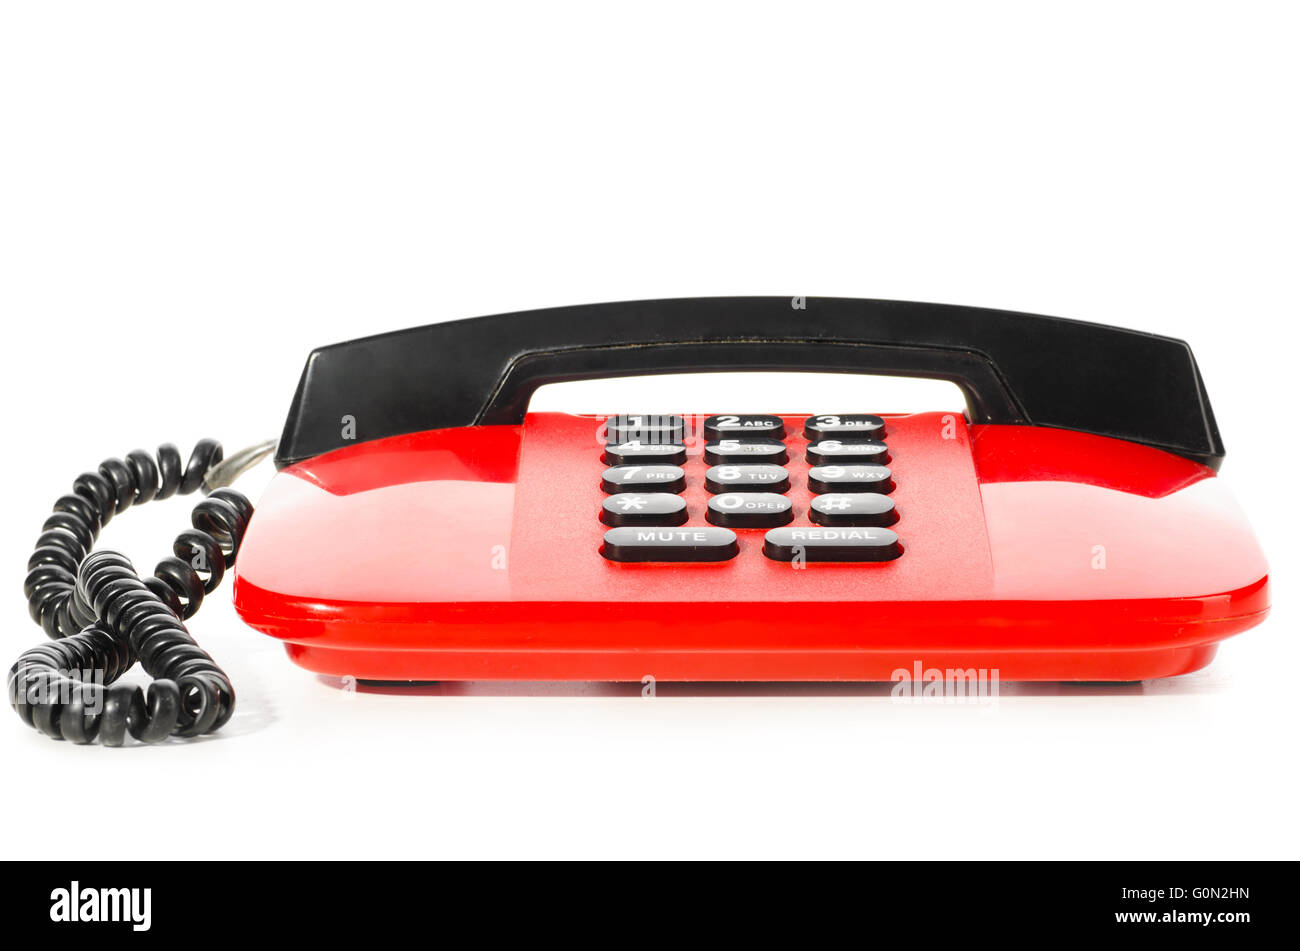 red desk phone - Stock Image